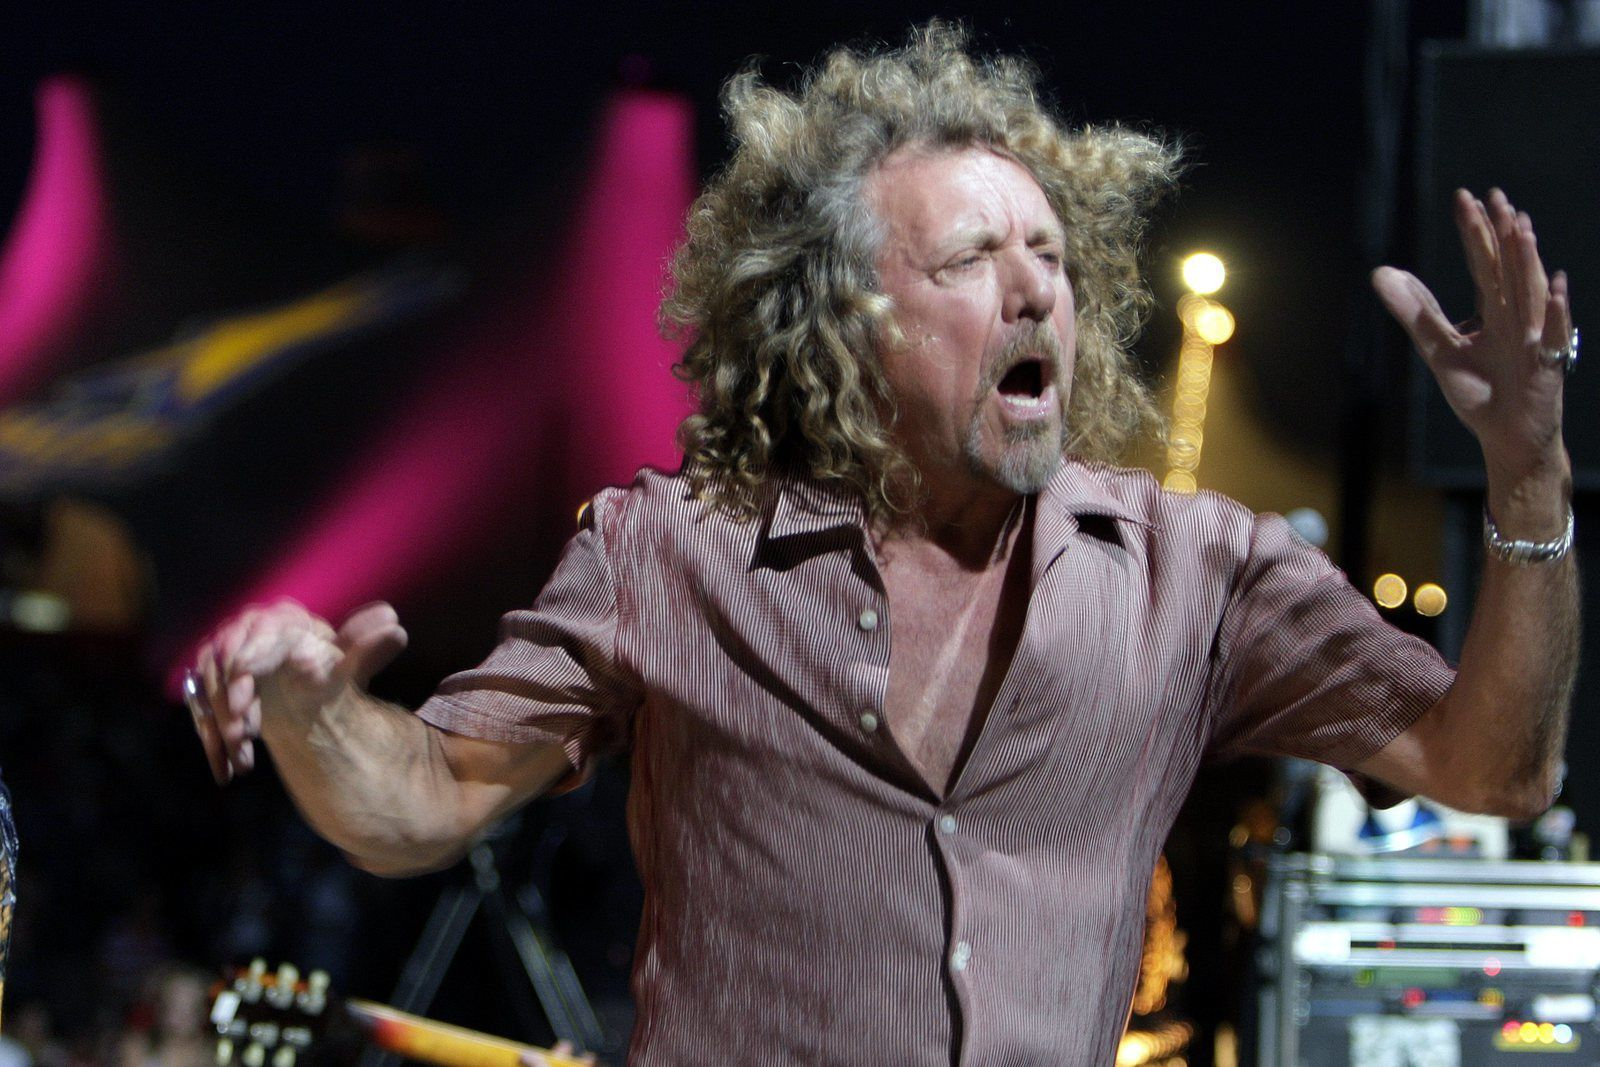 Robert Plant - Plant's golden mane was at its aging-rocker best in this 2005 concert appearance in Switzerland - AP PHOTO